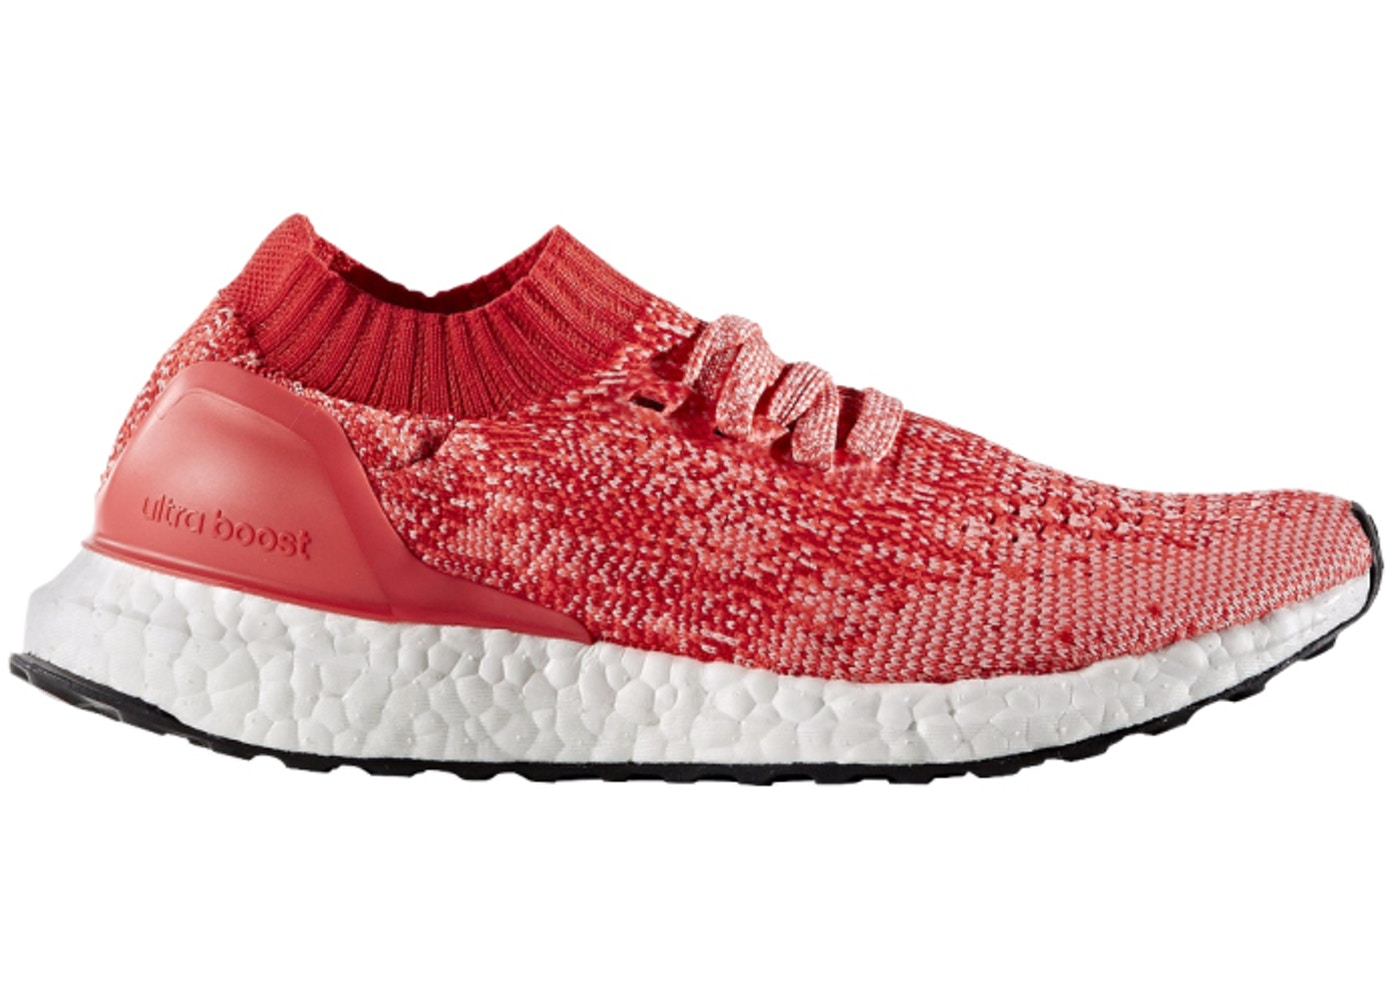 8dcb56068d5 adidas Ultra Boost Uncaged Ray Red (GS) - BA8296